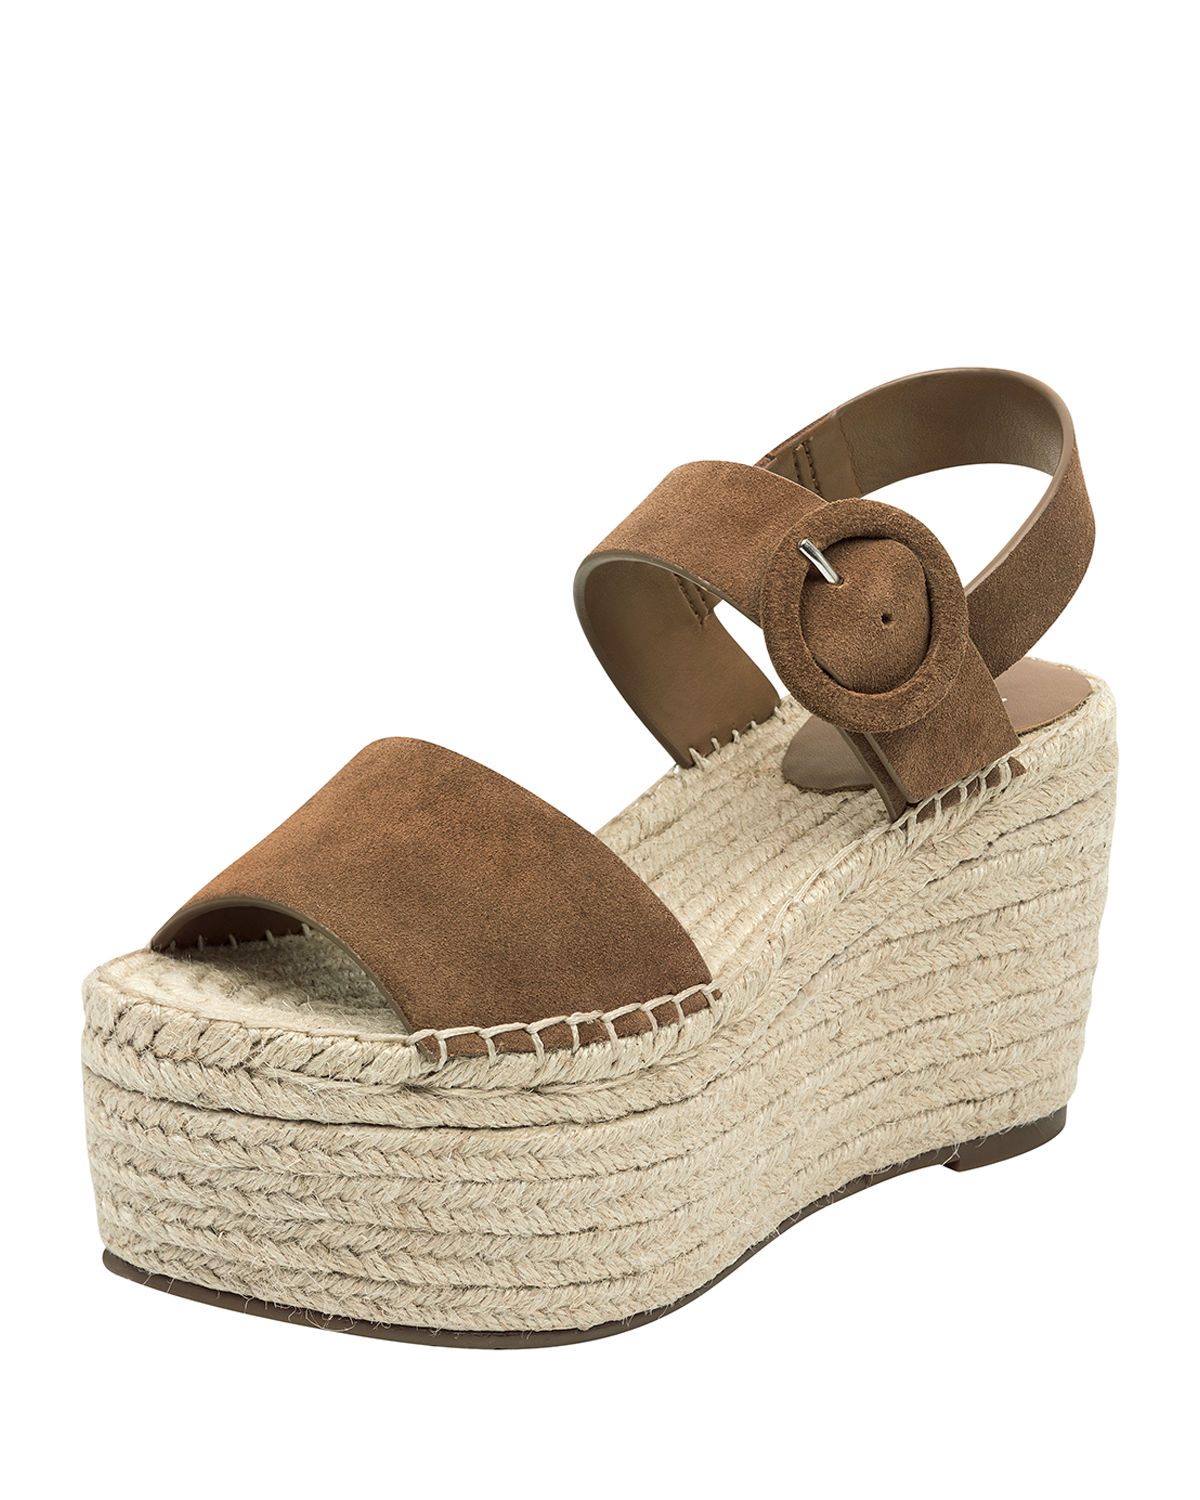 2f6088ce2 Marc Fisher Rex Suede Wedge Sandals In Dk Natural Cognac